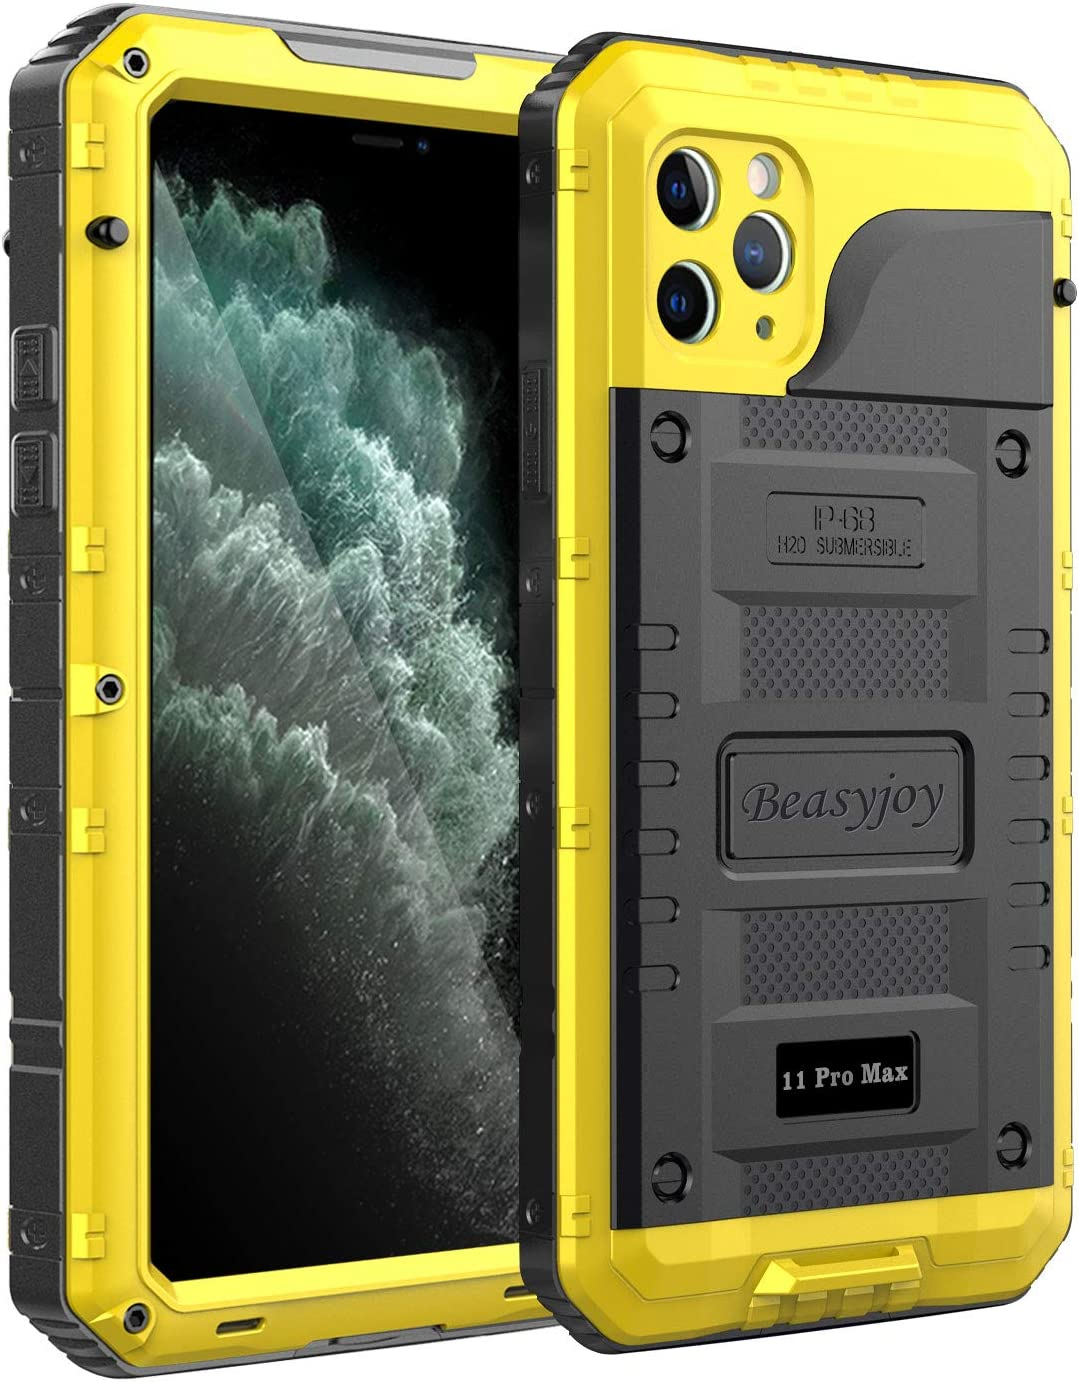 Beasyjoy iPhone 11 Pro Max Case Waterproof Metal Case Heavy Duty Built-in Screen Full Body Protective Shockproof Military Grade Yellow